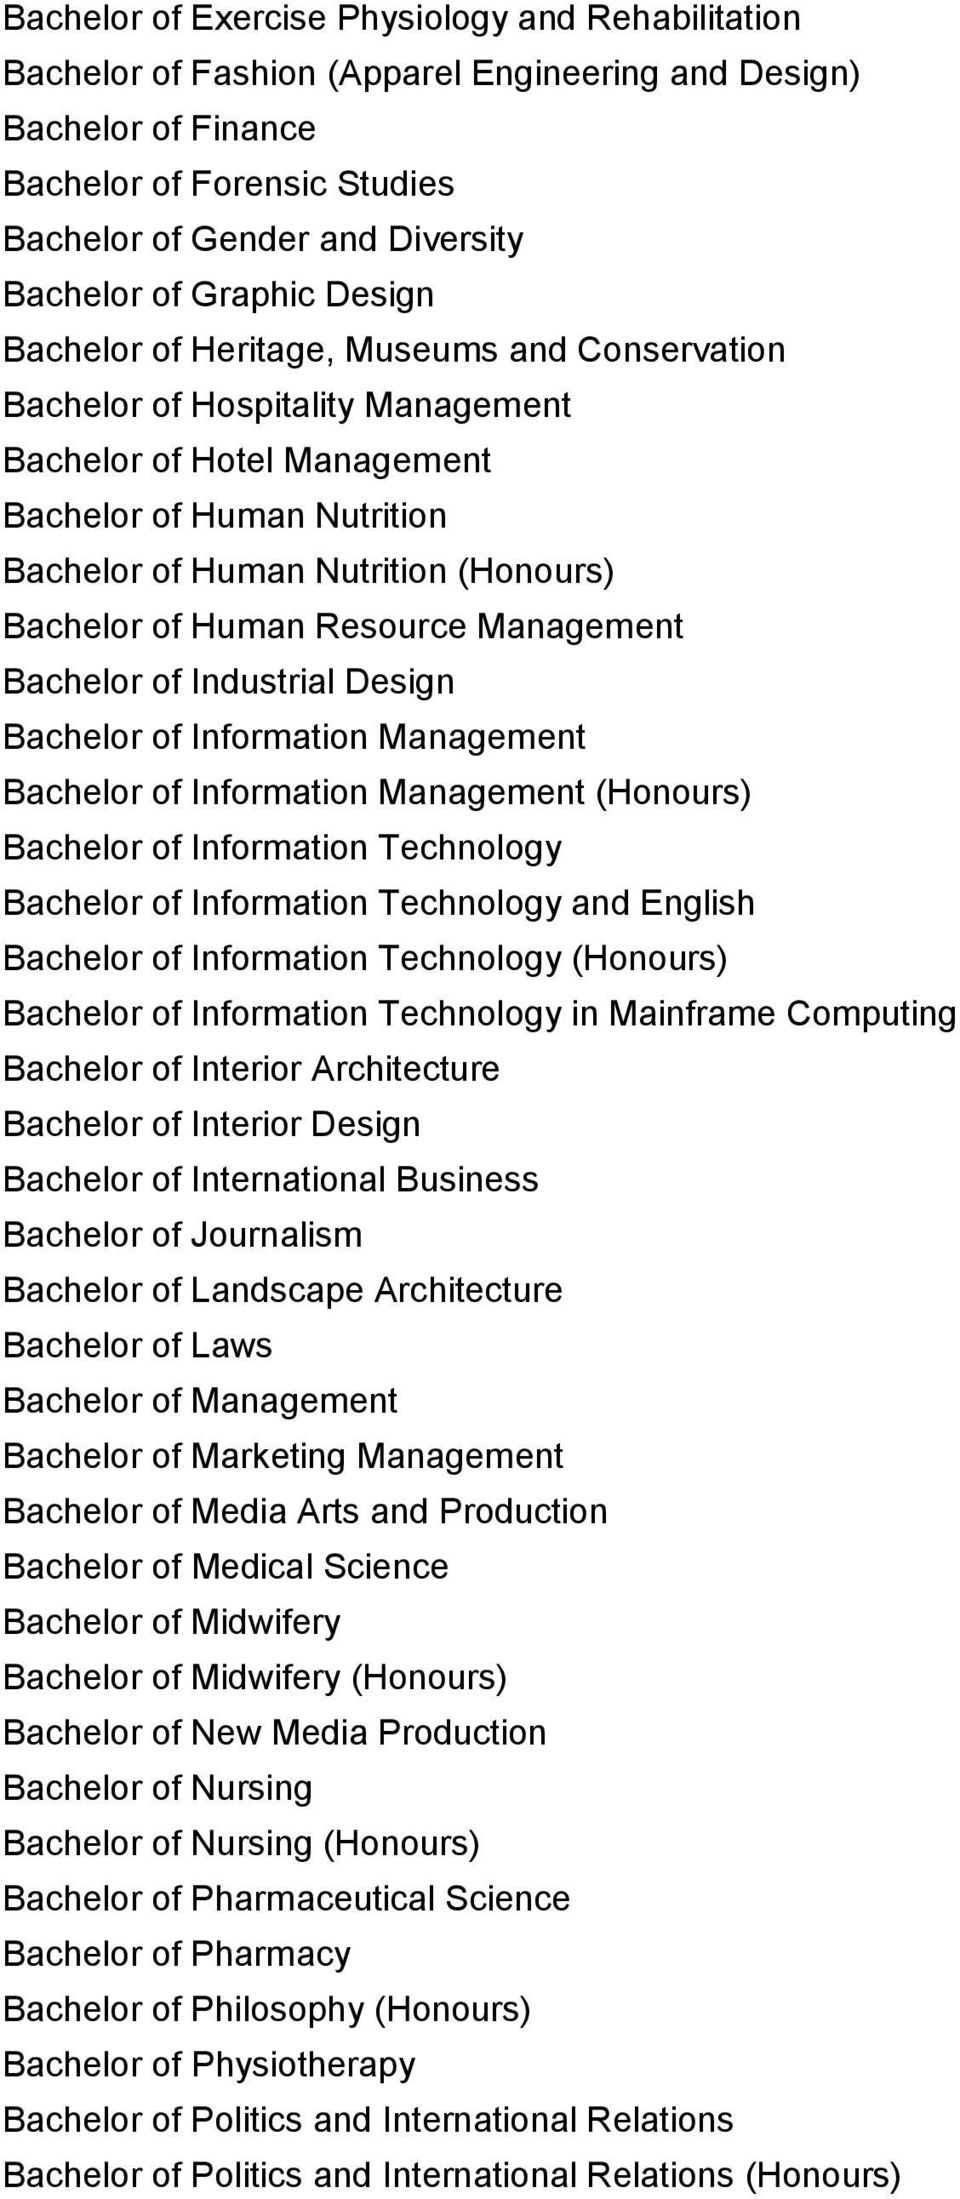 Bachelor of Human Resource Management Bachelor of Industrial Design Bachelor of Information Management Bachelor of Information Management (Honours) Bachelor of Information Technology Bachelor of